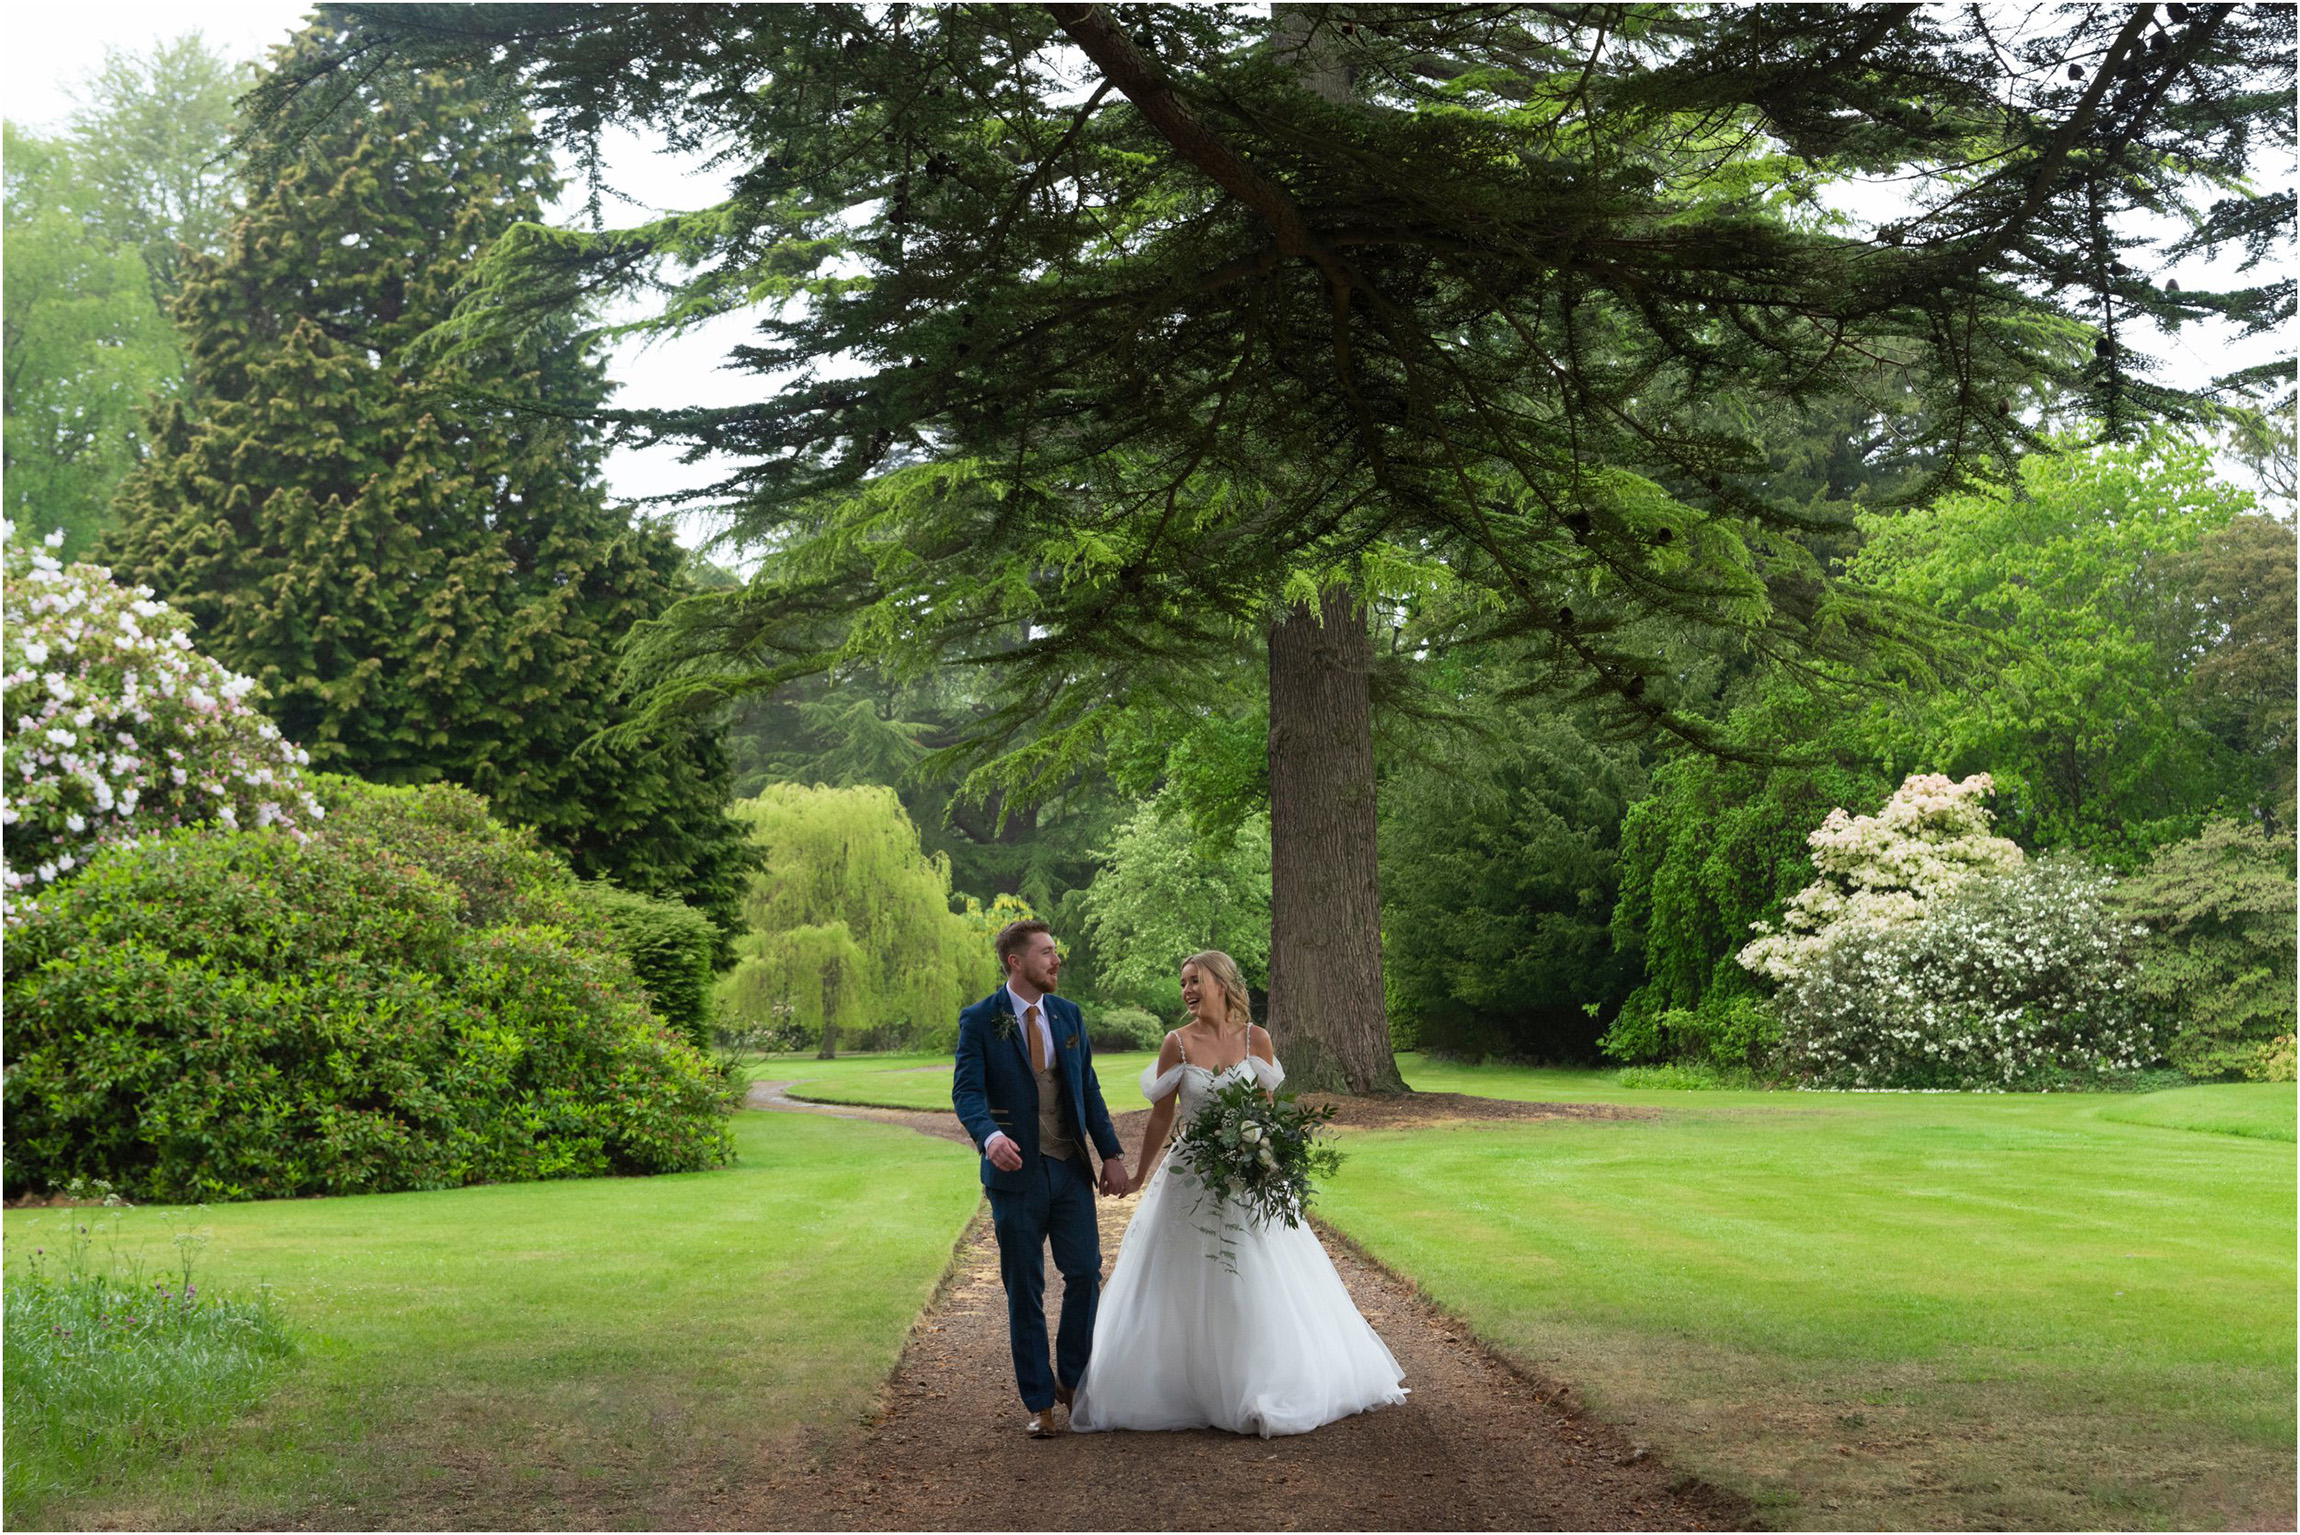 ©FianderFoto_Scotland Wedding Photographer_Errol Park Estate_Janine_Karl_114.jpg